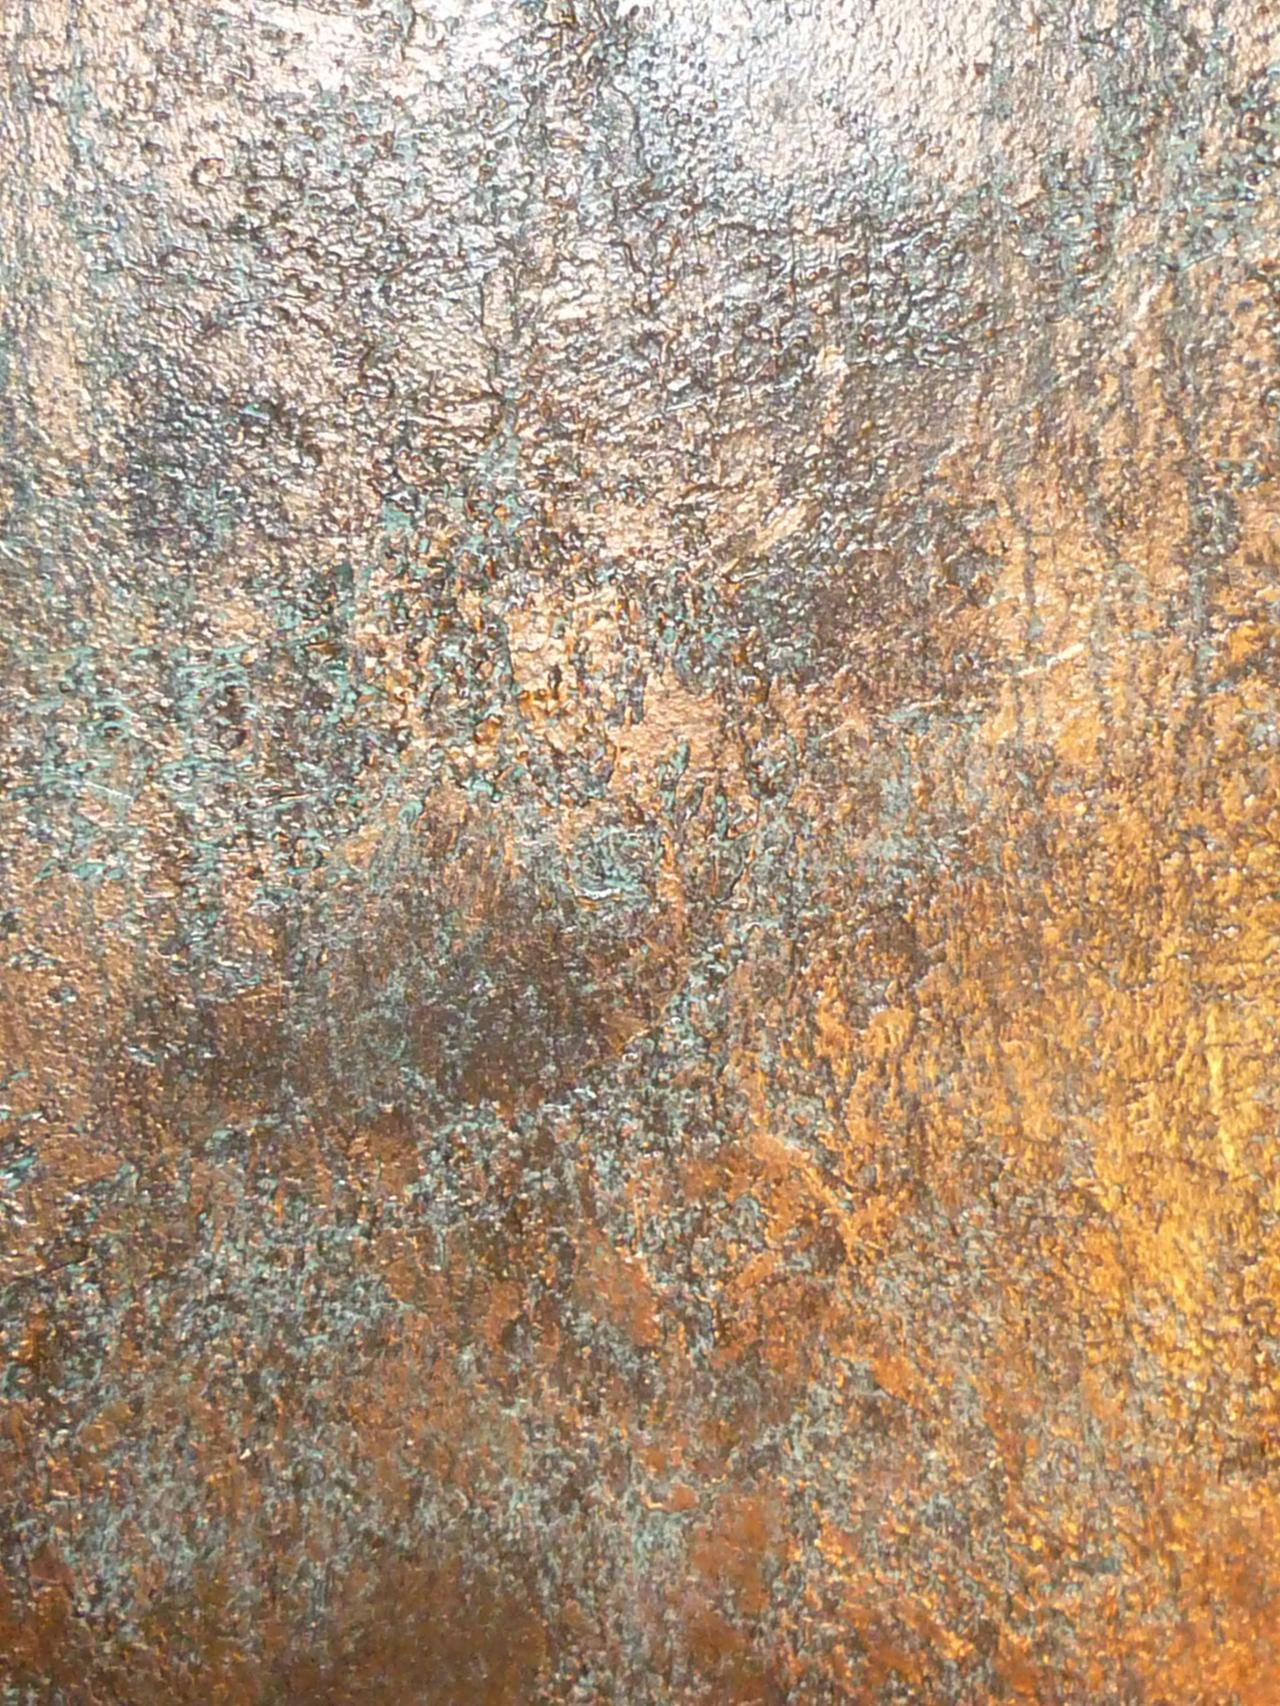 Textured Bronze Patina - Faux Finish Abstract Art Color & Texture In 2019 Walls